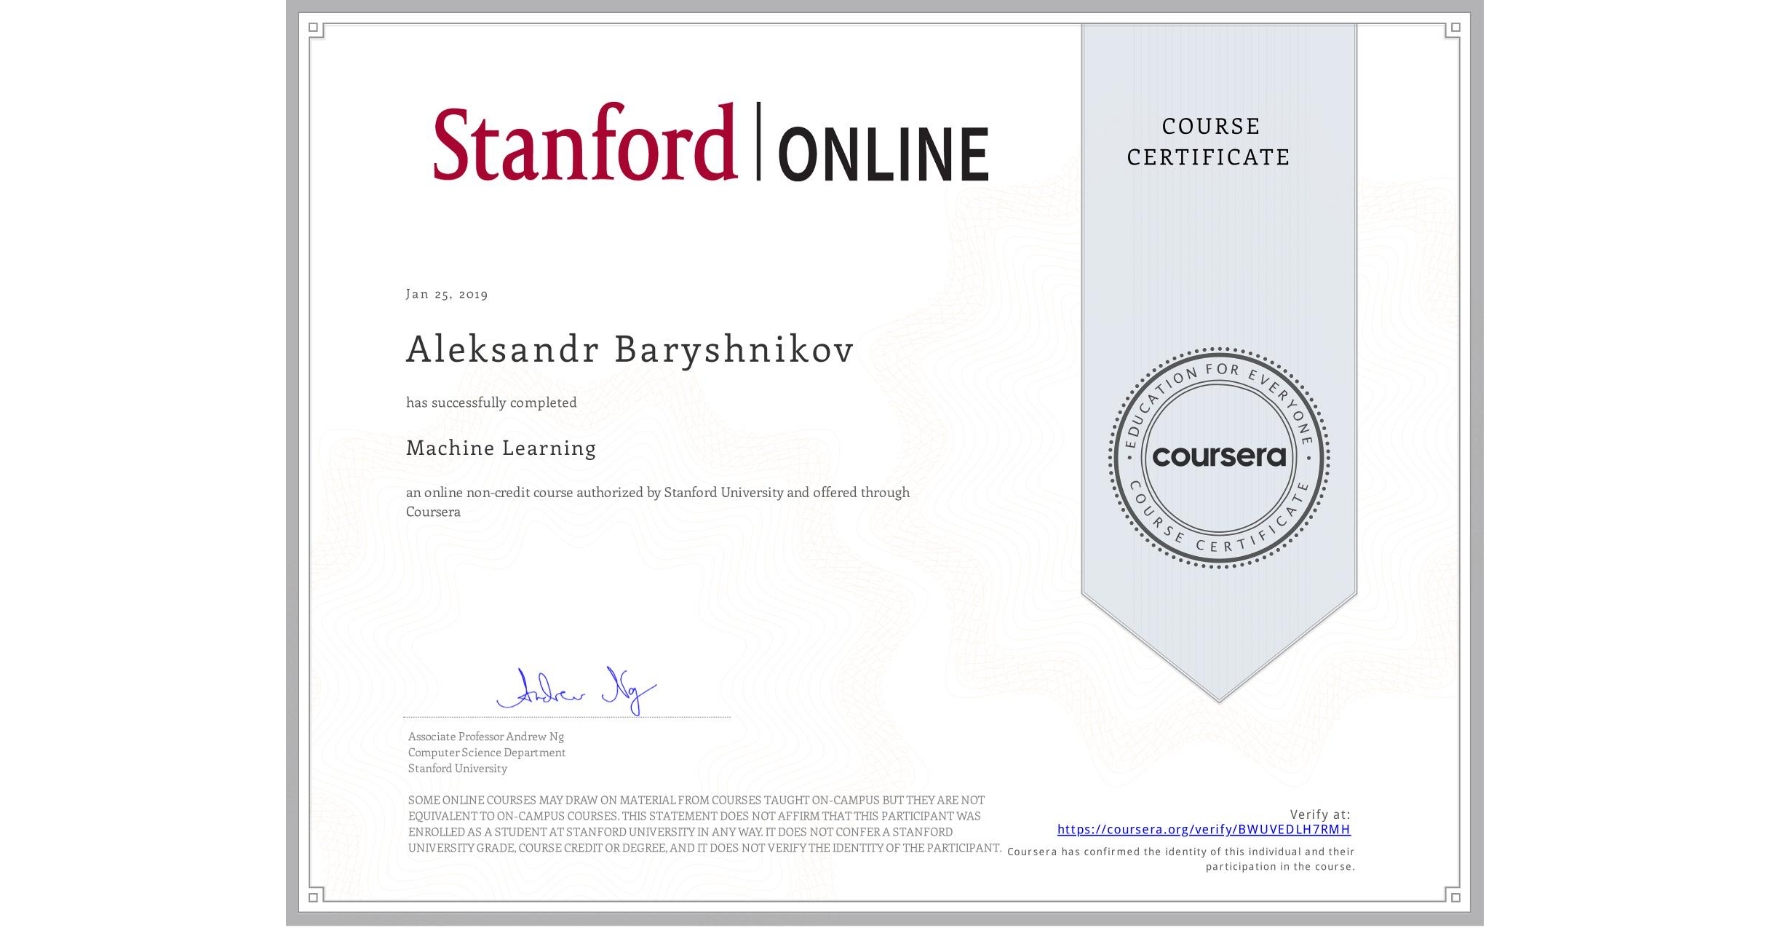 View certificate for Aleksandr Baryshnikov, Machine Learning, an online non-credit course authorized by Stanford University and offered through Coursera